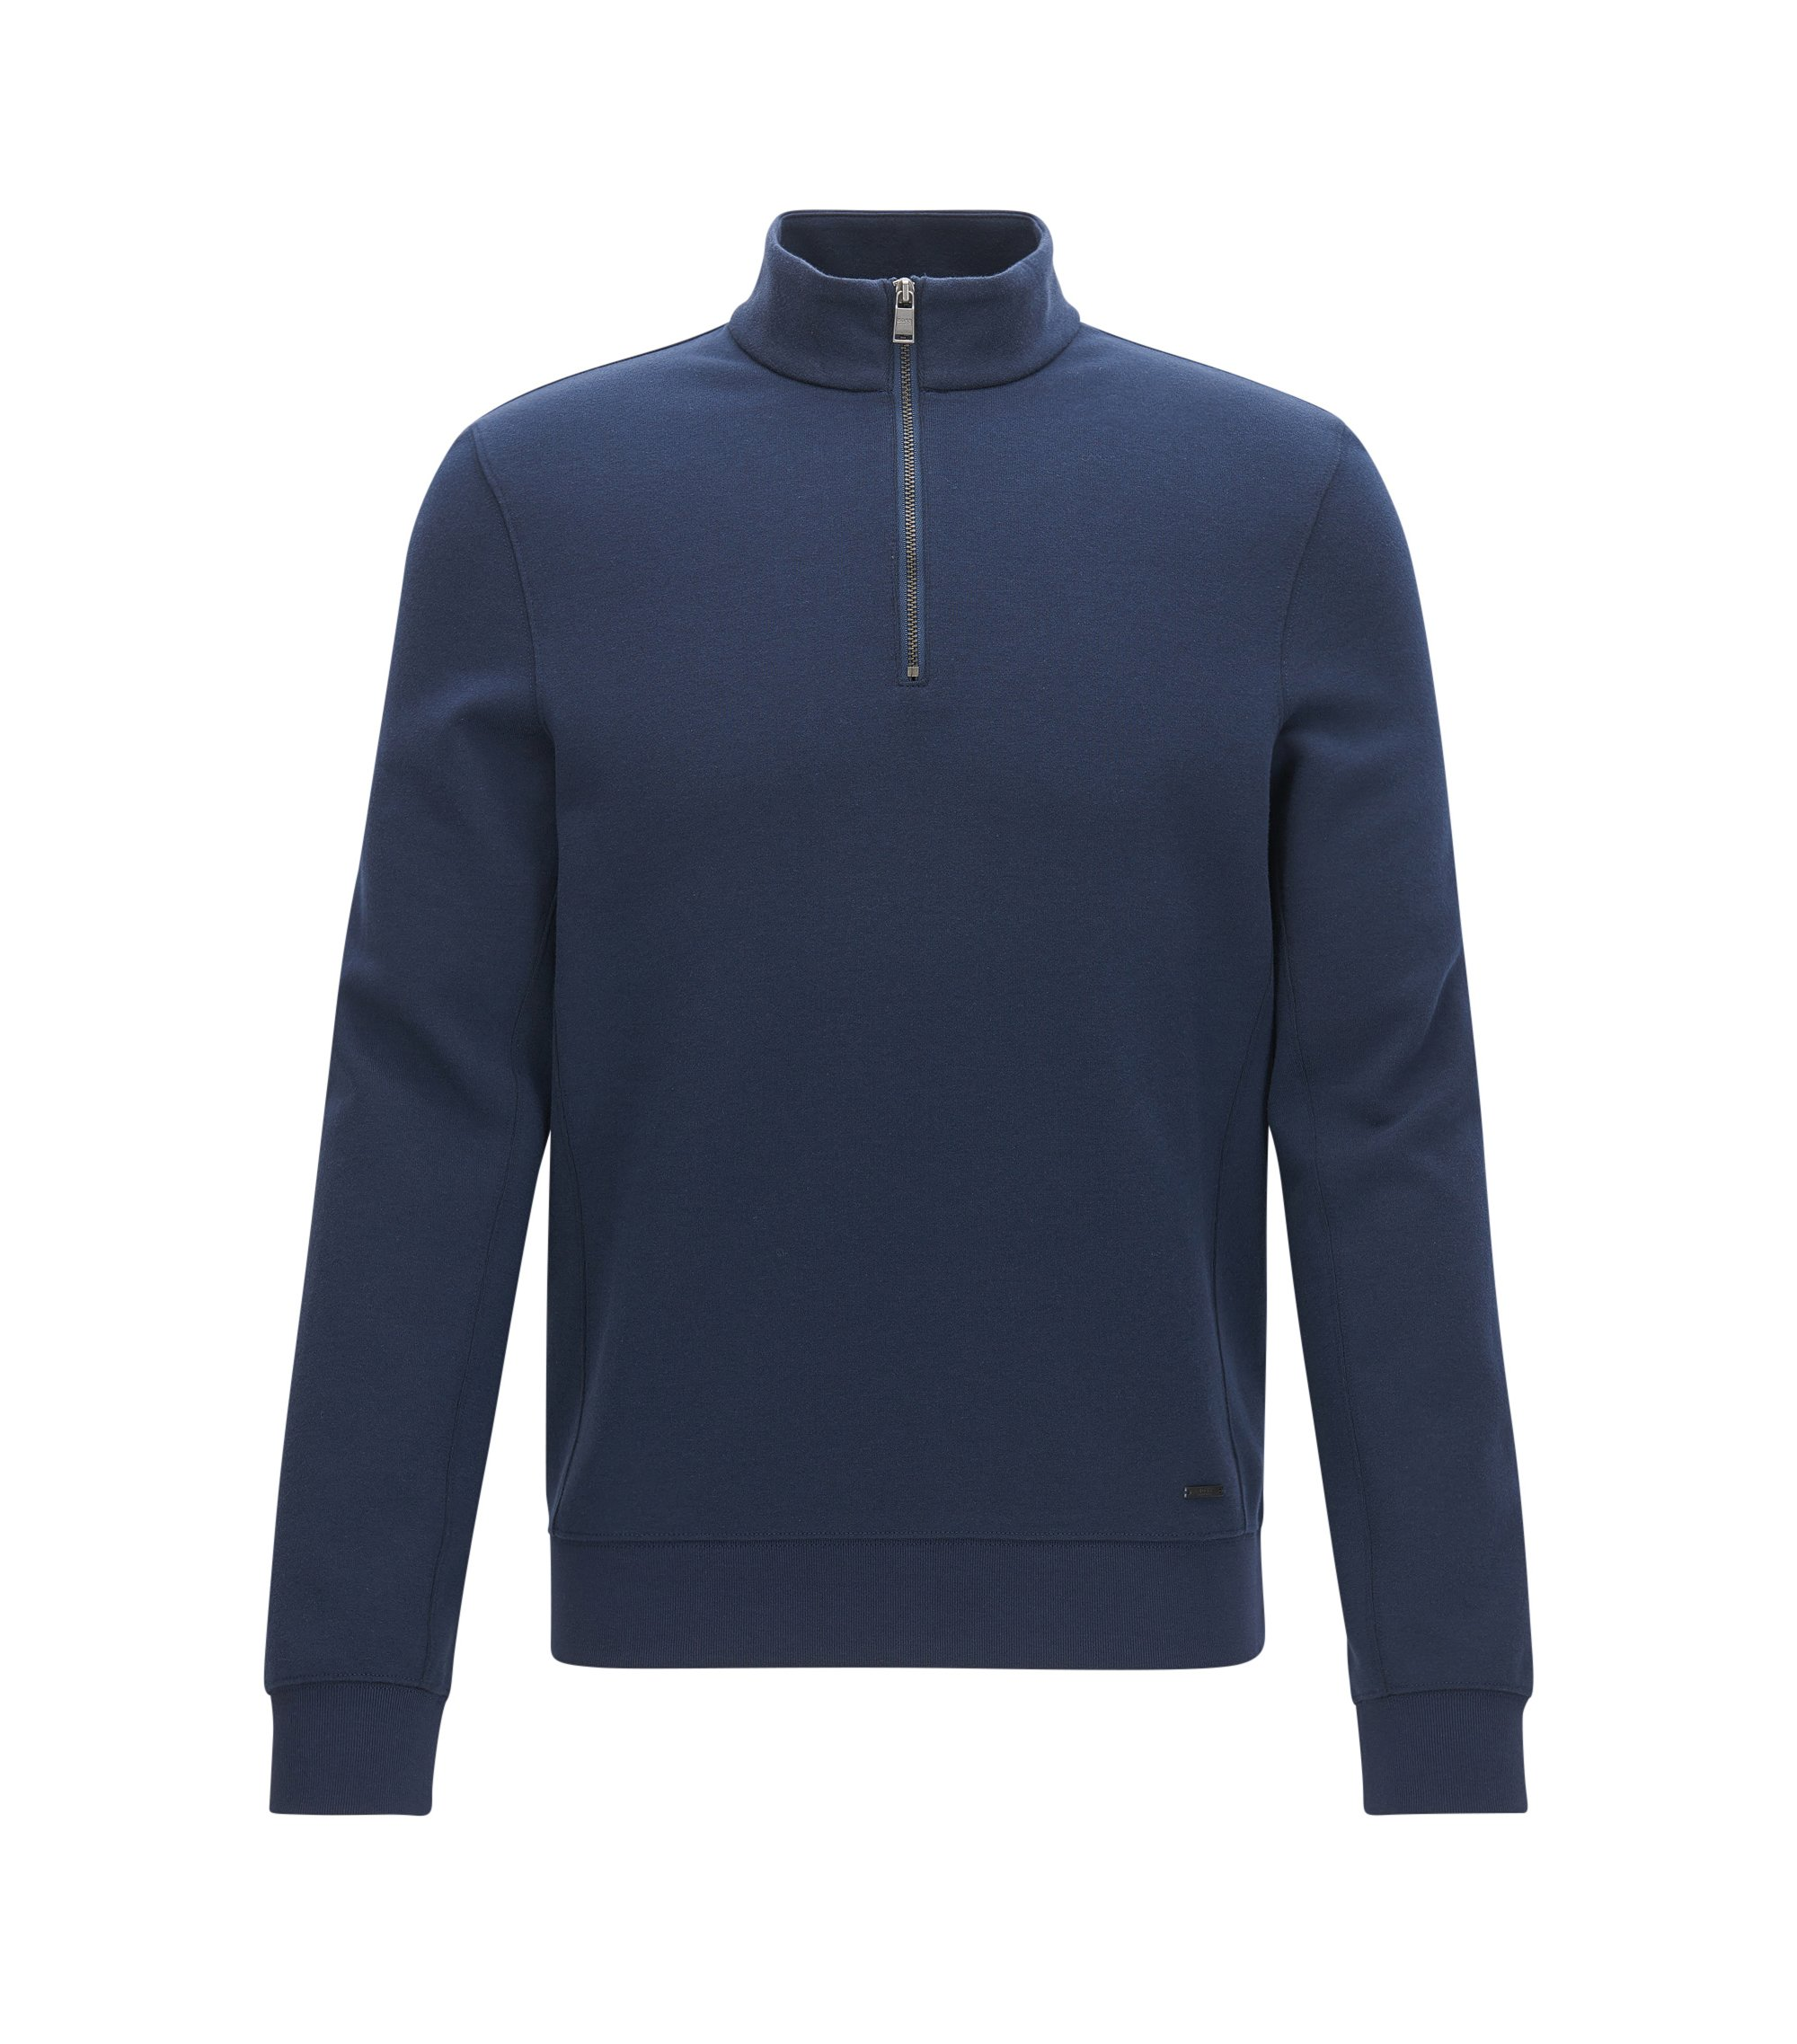 Slim-fit zip-neck sweatshirt in a cotton blend, Dark Blue